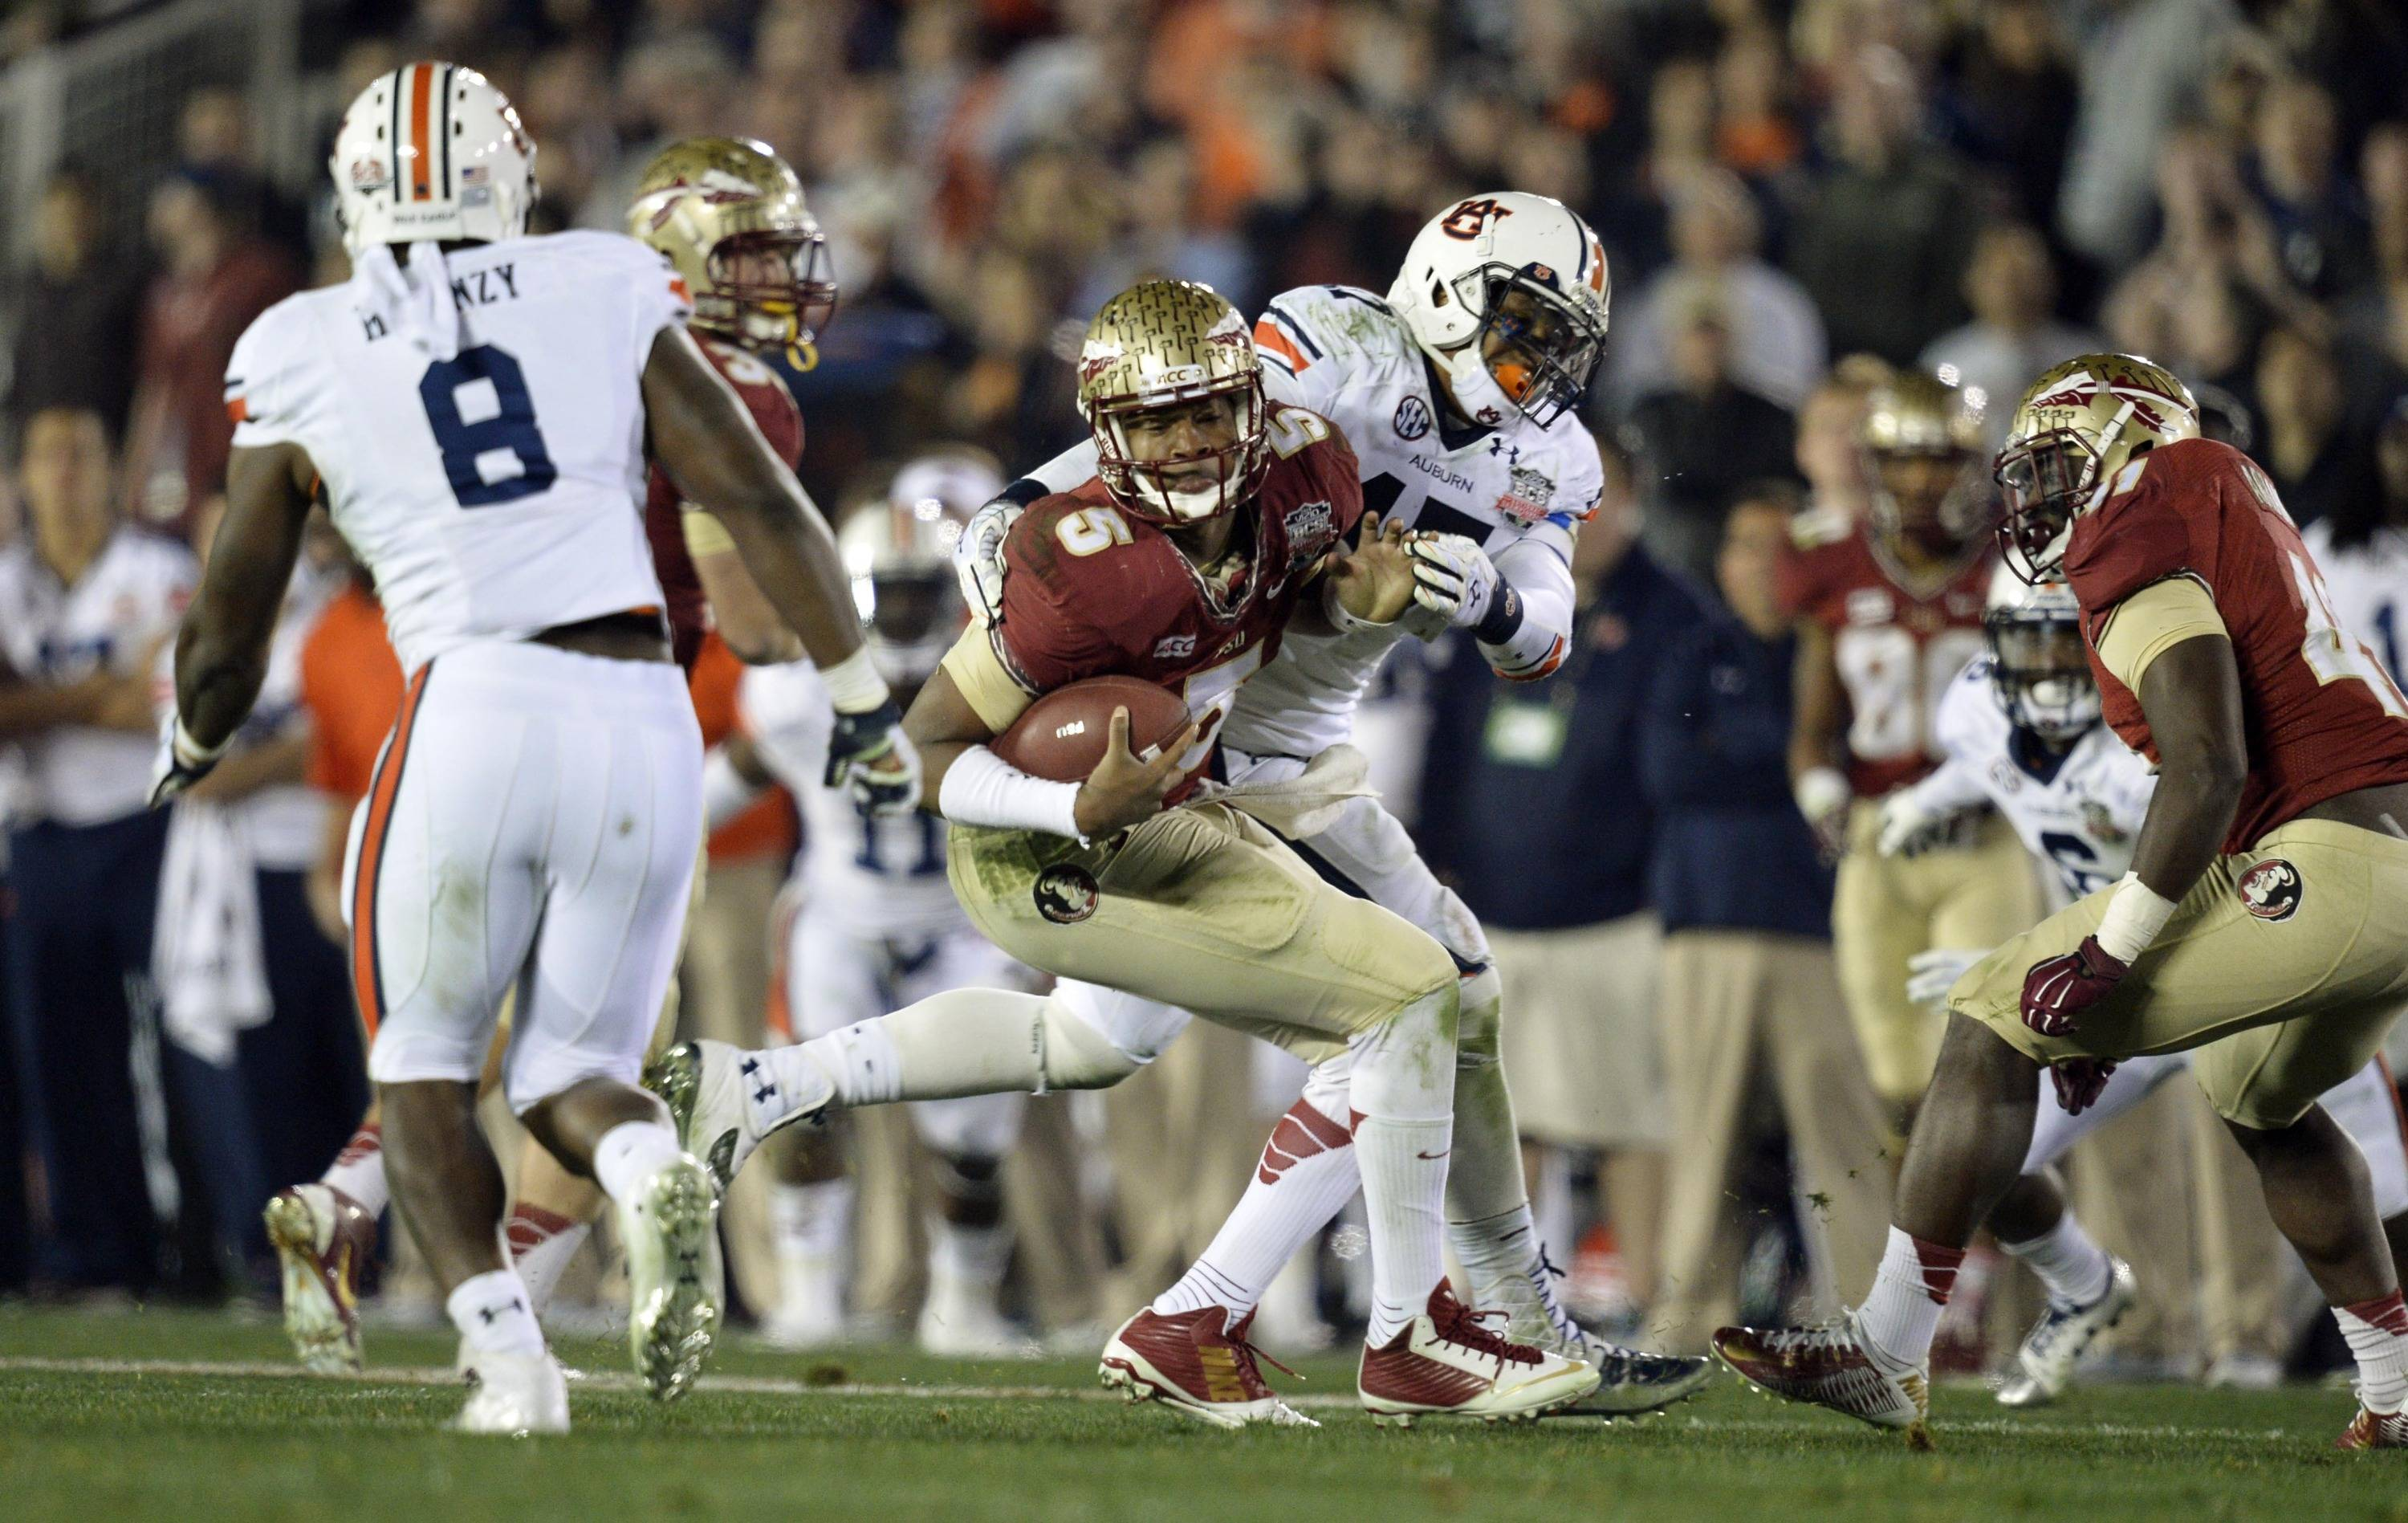 Jan 6, 2014; Pasadena, CA, USA; Florida State Seminoles quarterback Jameis Winston (5) is tackled by Auburn Tigers linebacker Kris Frost (17) during the second half of the 2014 BCS National Championship game at the Rose Bowl.  Mandatory Credit: Robert Hanashiro-USA TODAY Sports